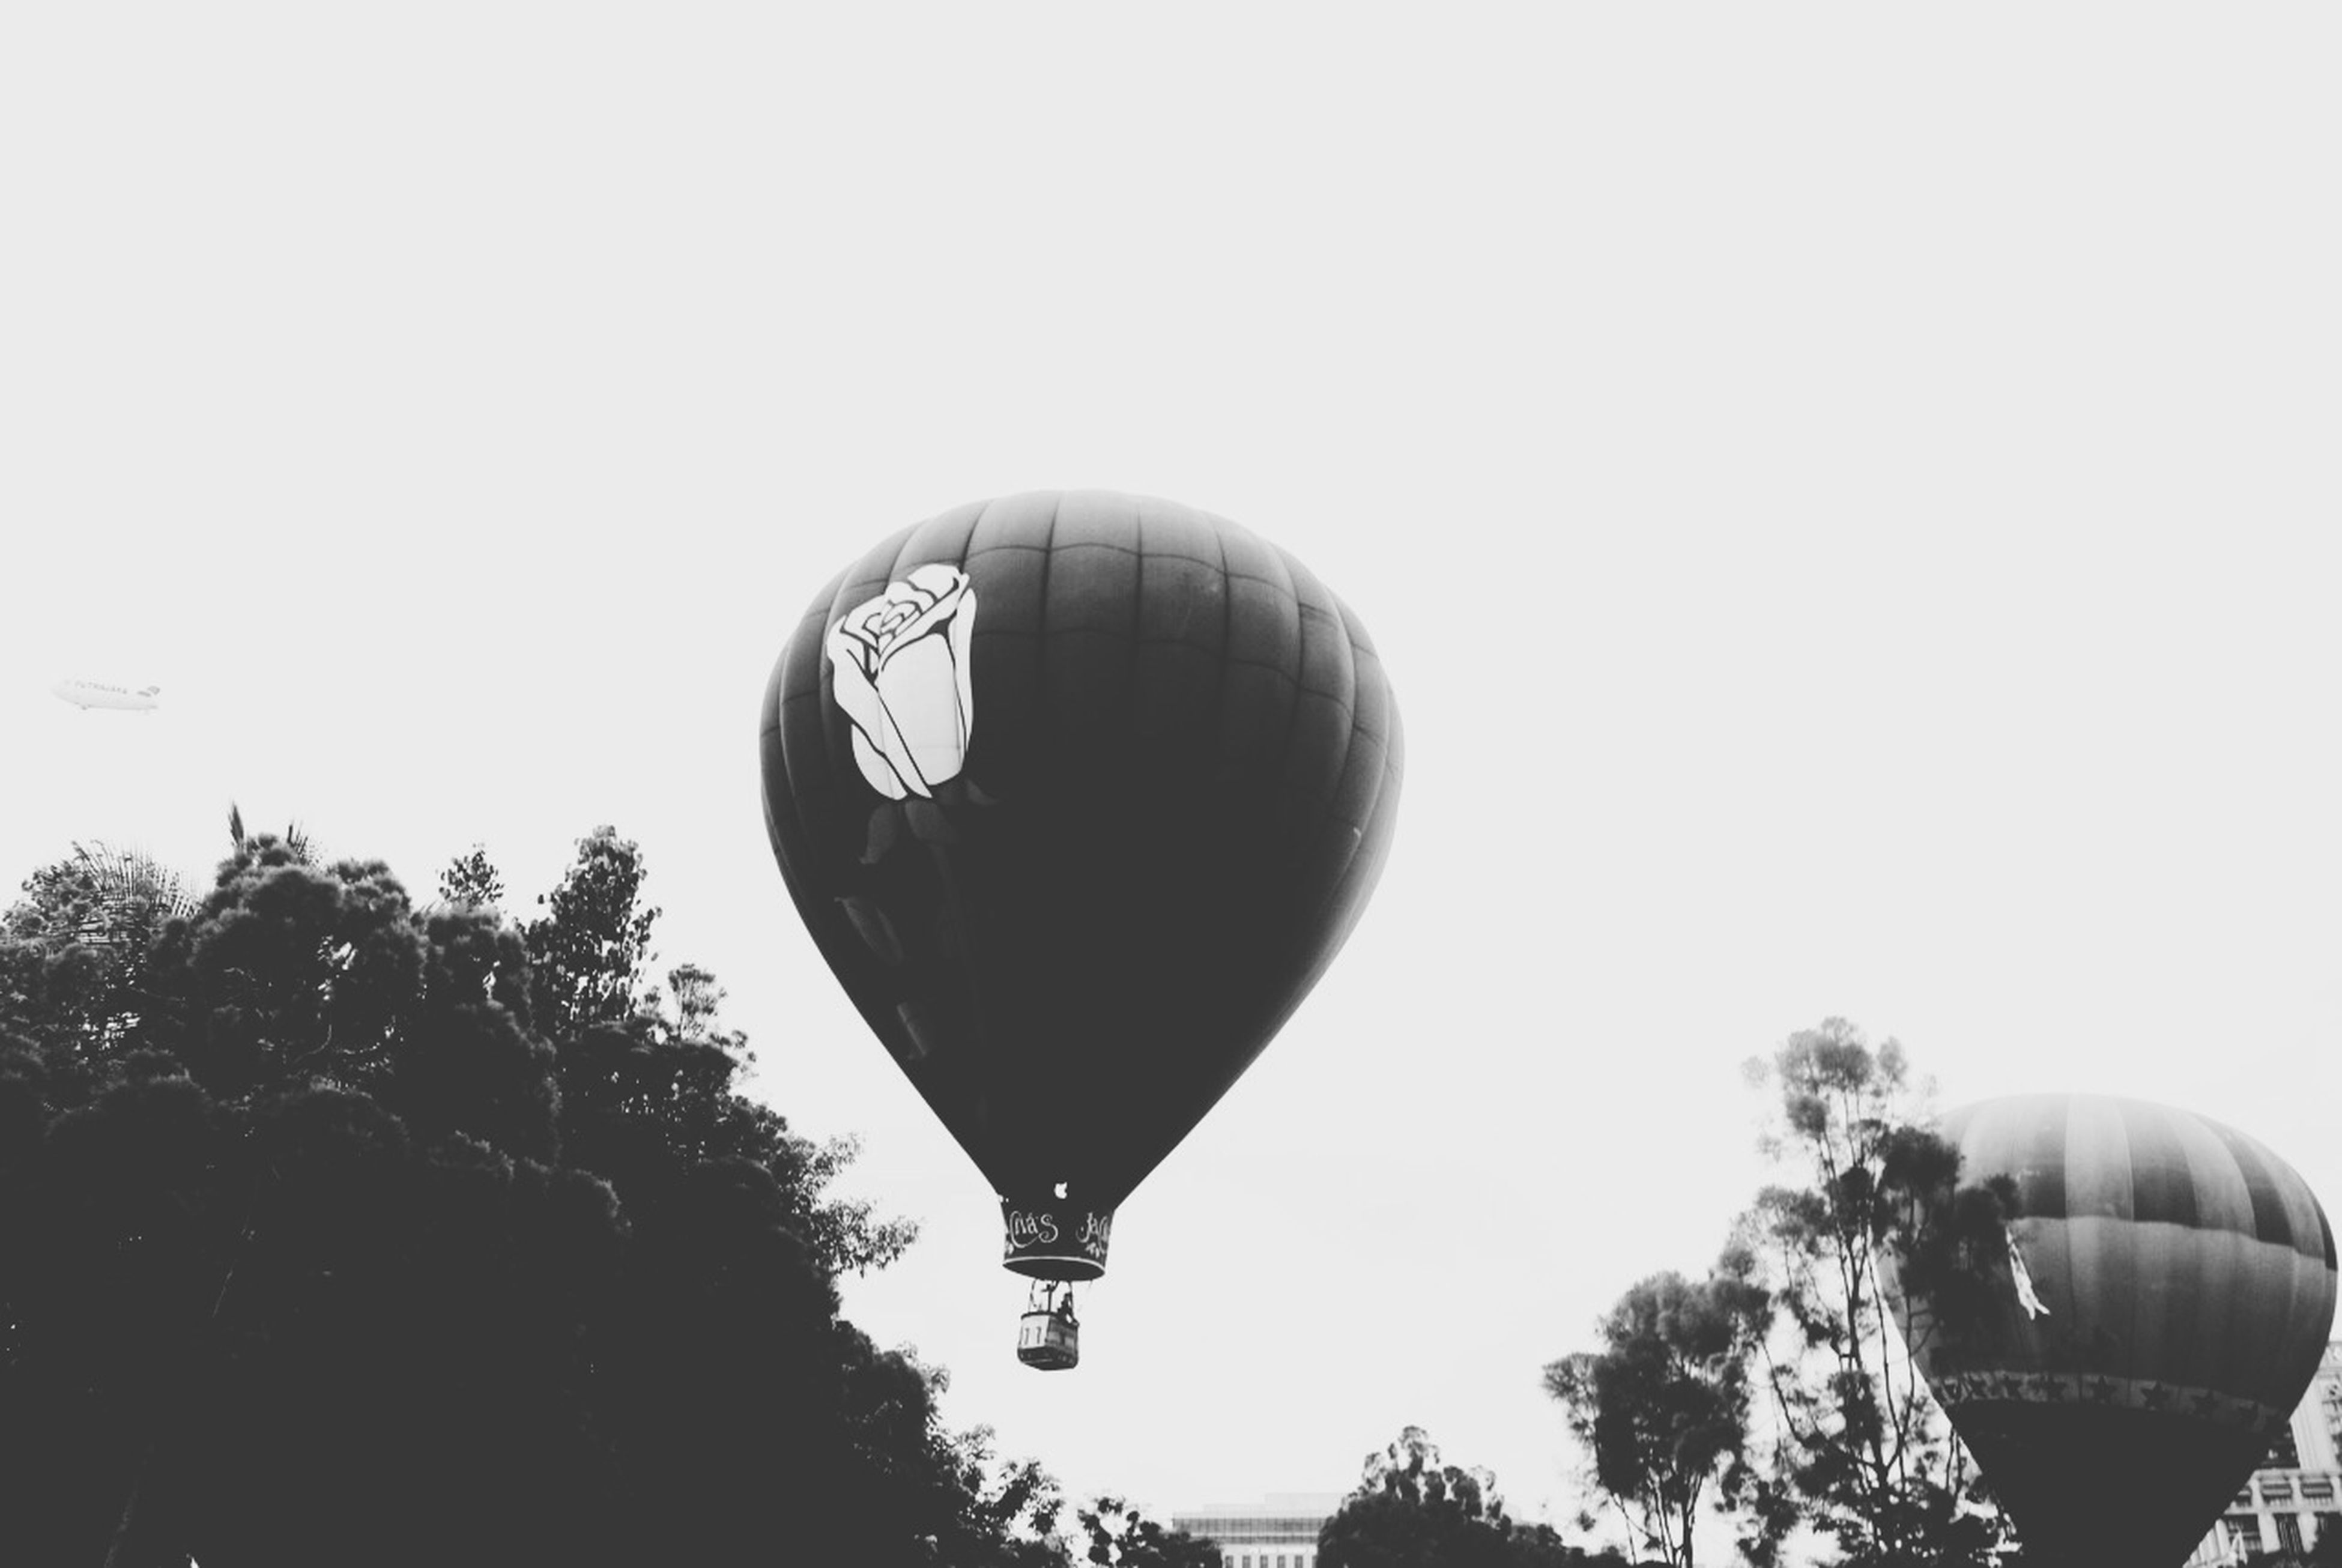 low angle view, clear sky, tree, sphere, hot air balloon, mid-air, copy space, sky, flying, lighting equipment, outdoors, street light, hanging, moon, celebration, balloon, no people, day, decoration, nature